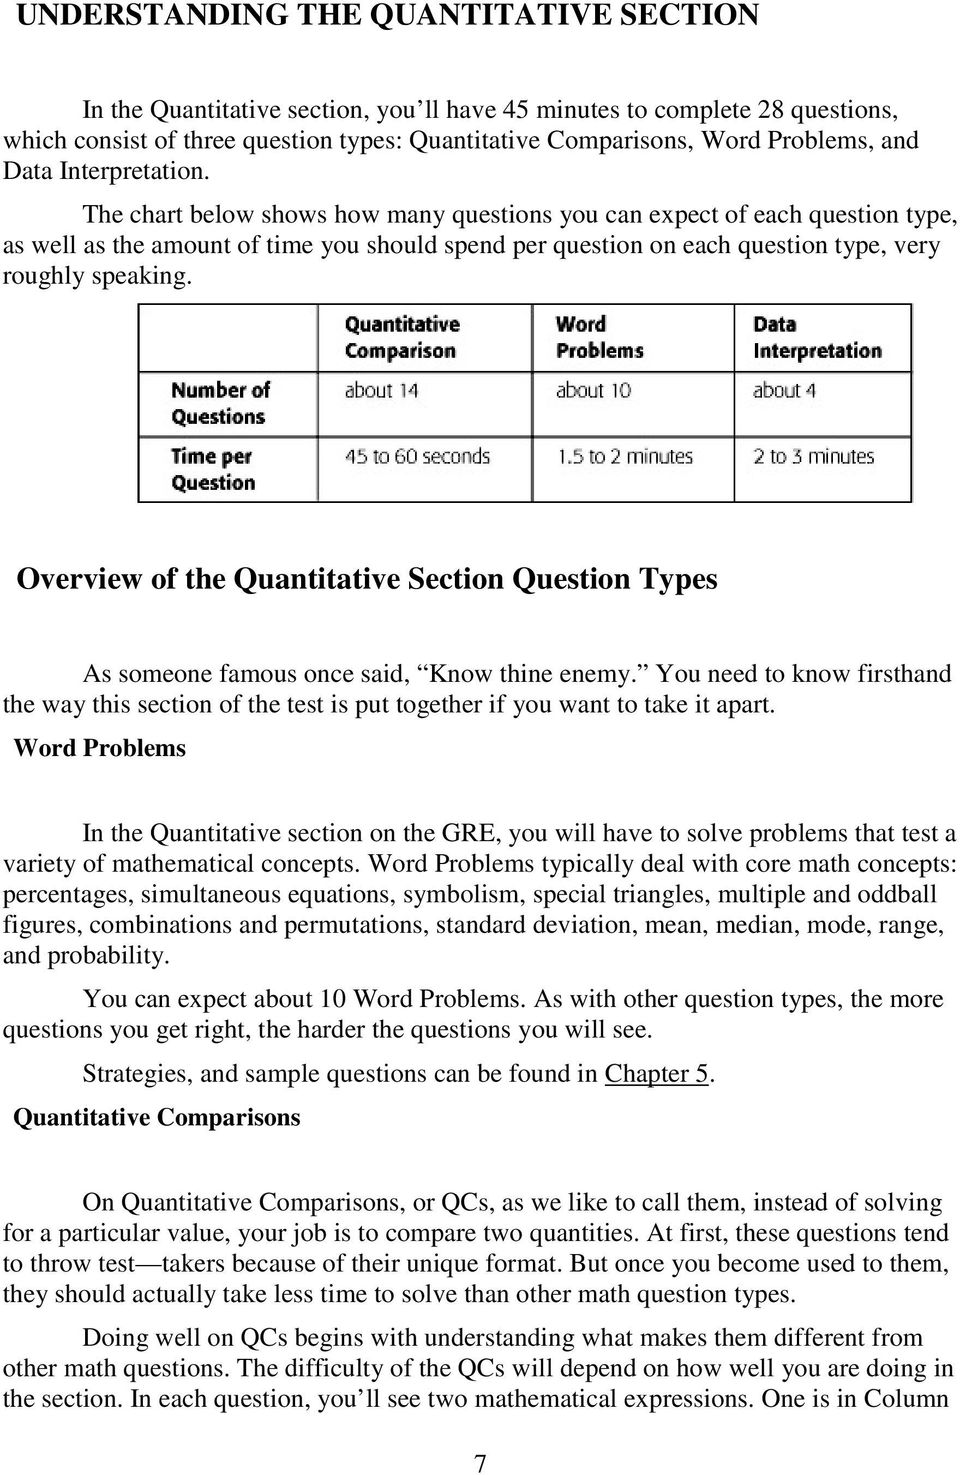 Gre exam math workbook seventh edition pdf the chart below shows how many questions you can expect of each question type as fandeluxe Gallery